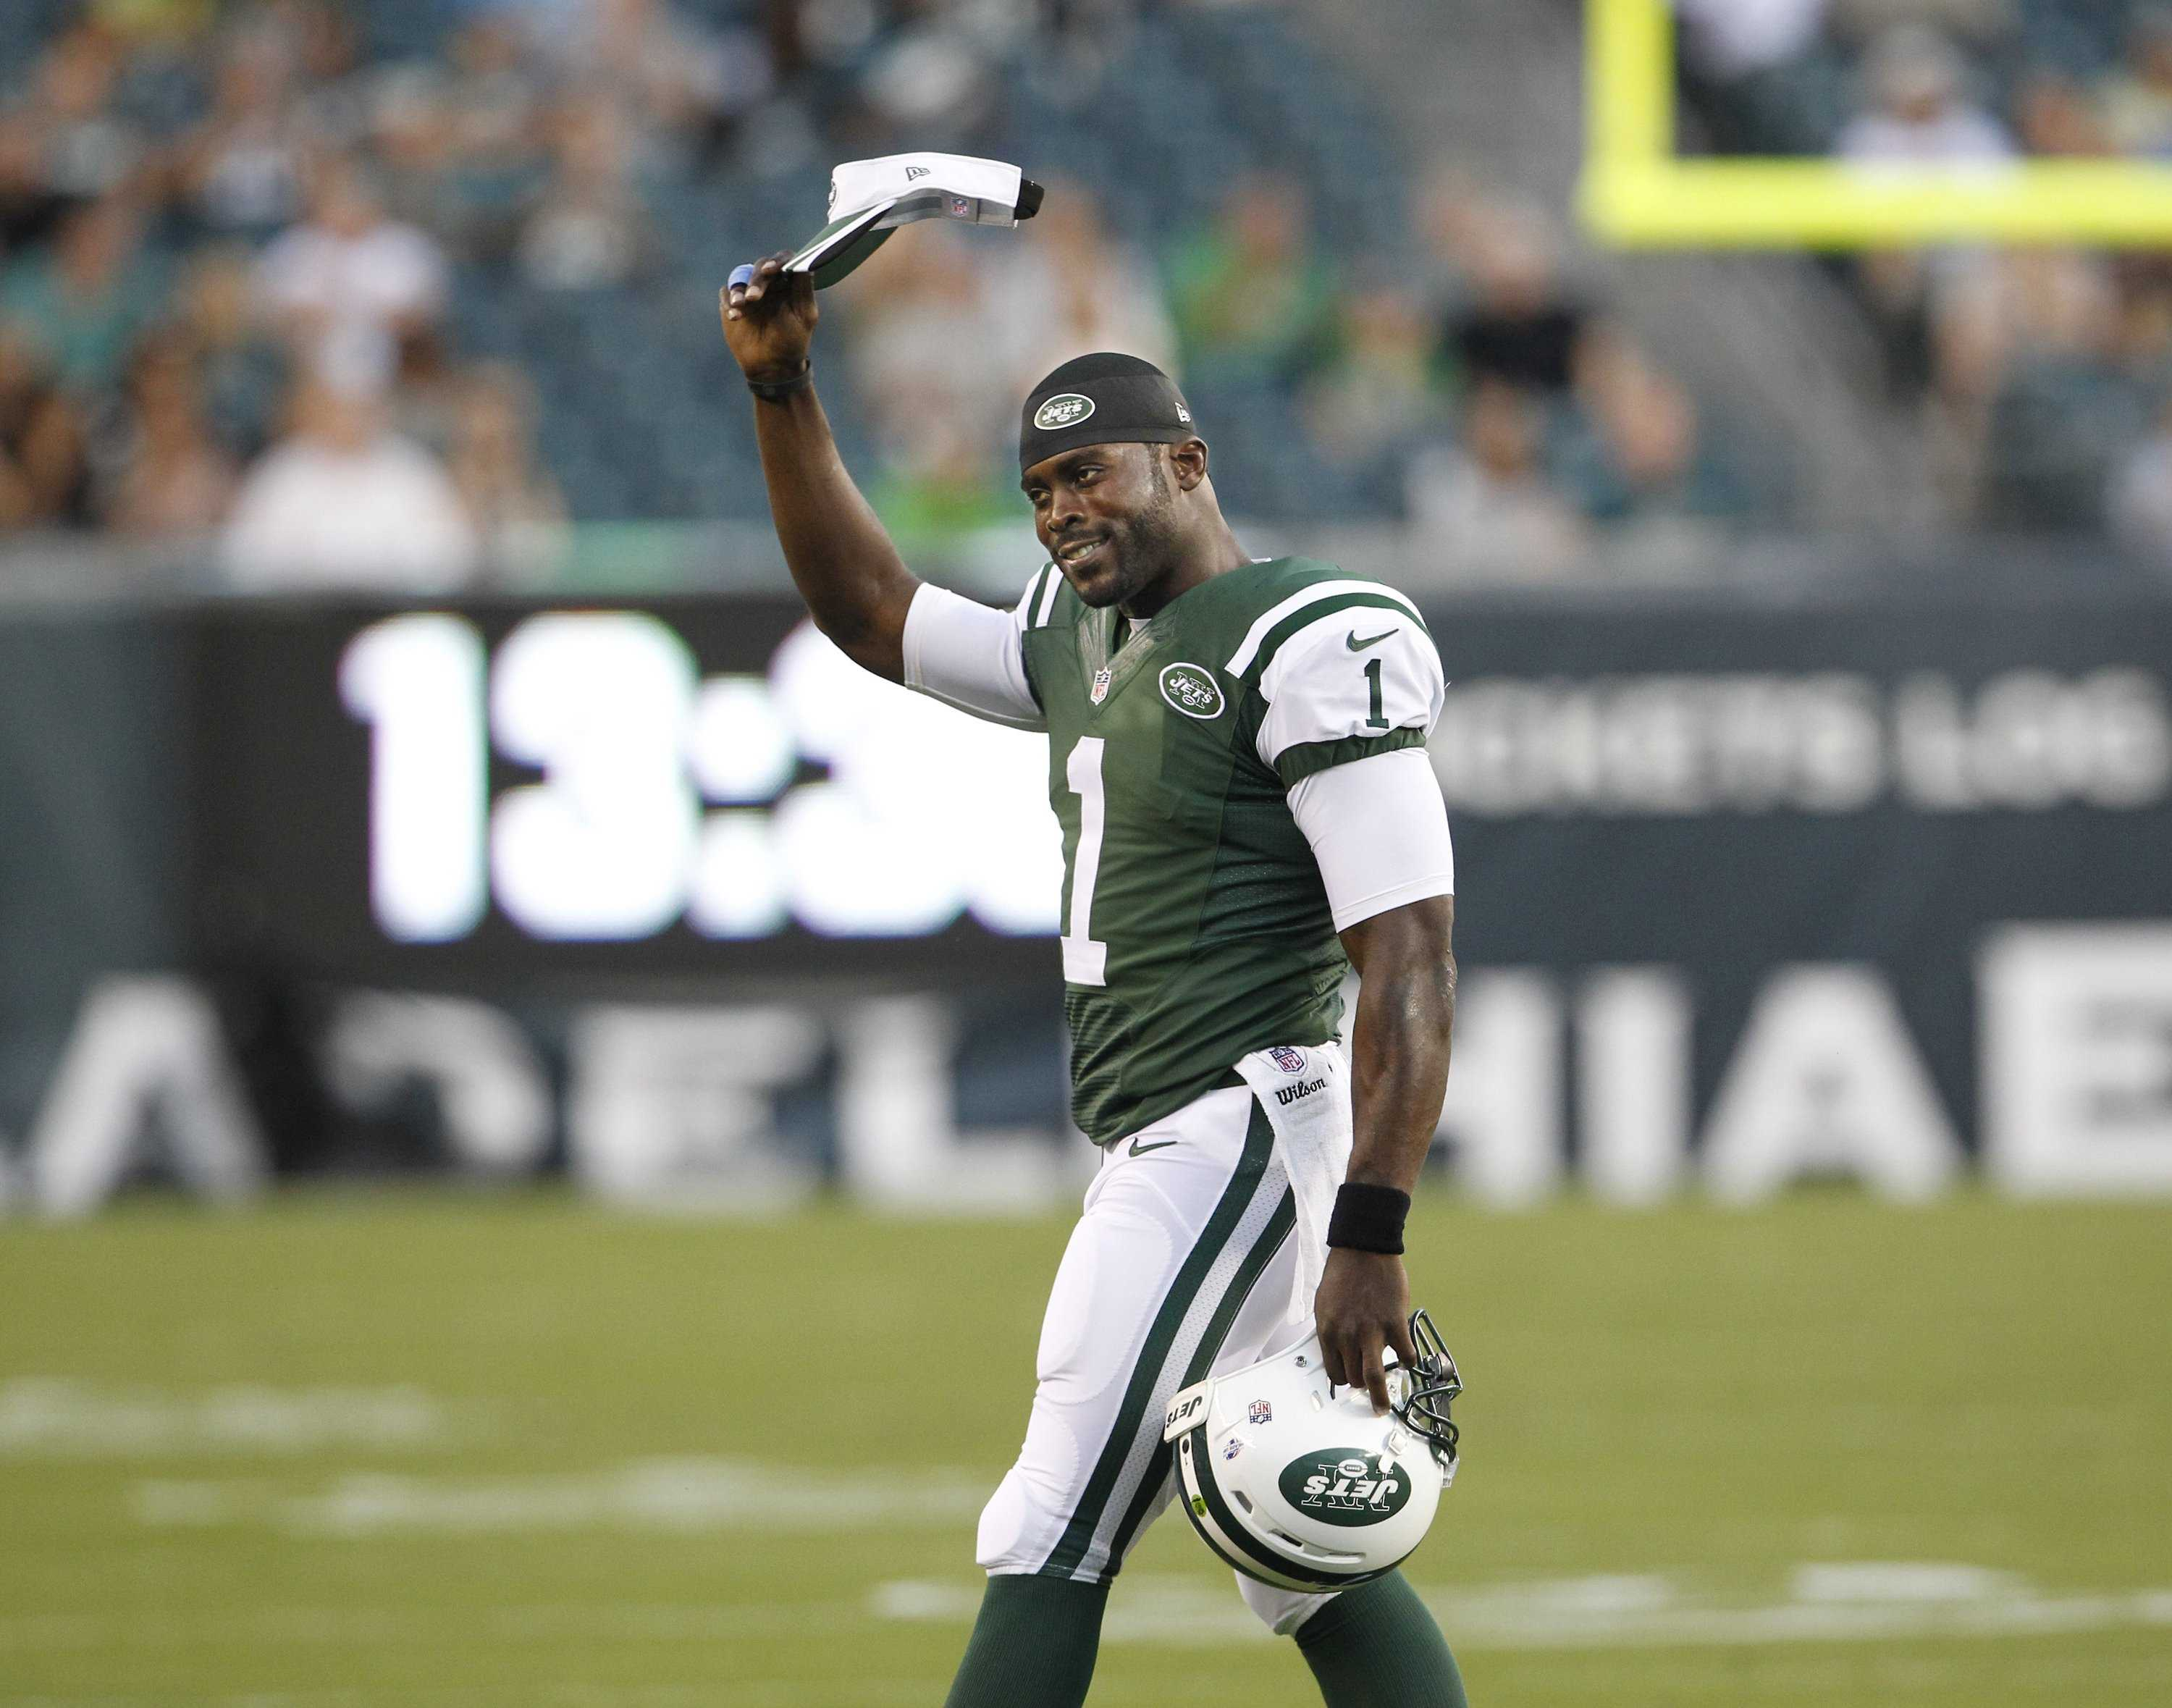 Despite his past mistakes, Vick should be remembered as a hero and the most polarized athlete of his generation. Photo courtesy of Tribune News Services.